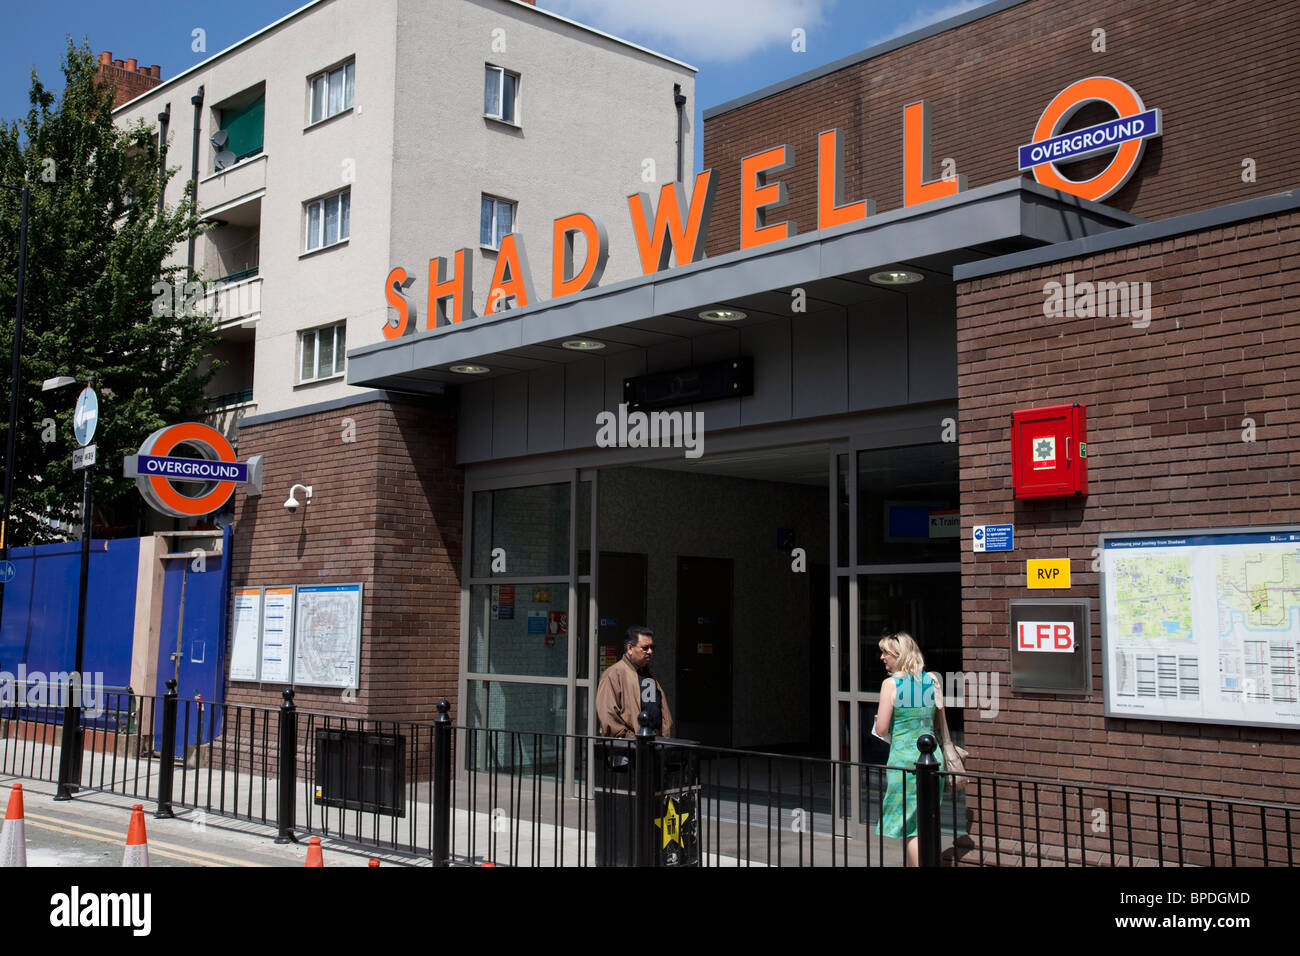 New London Overground train line in East London. This is the replacement for the old East London underground line. - Stock Image